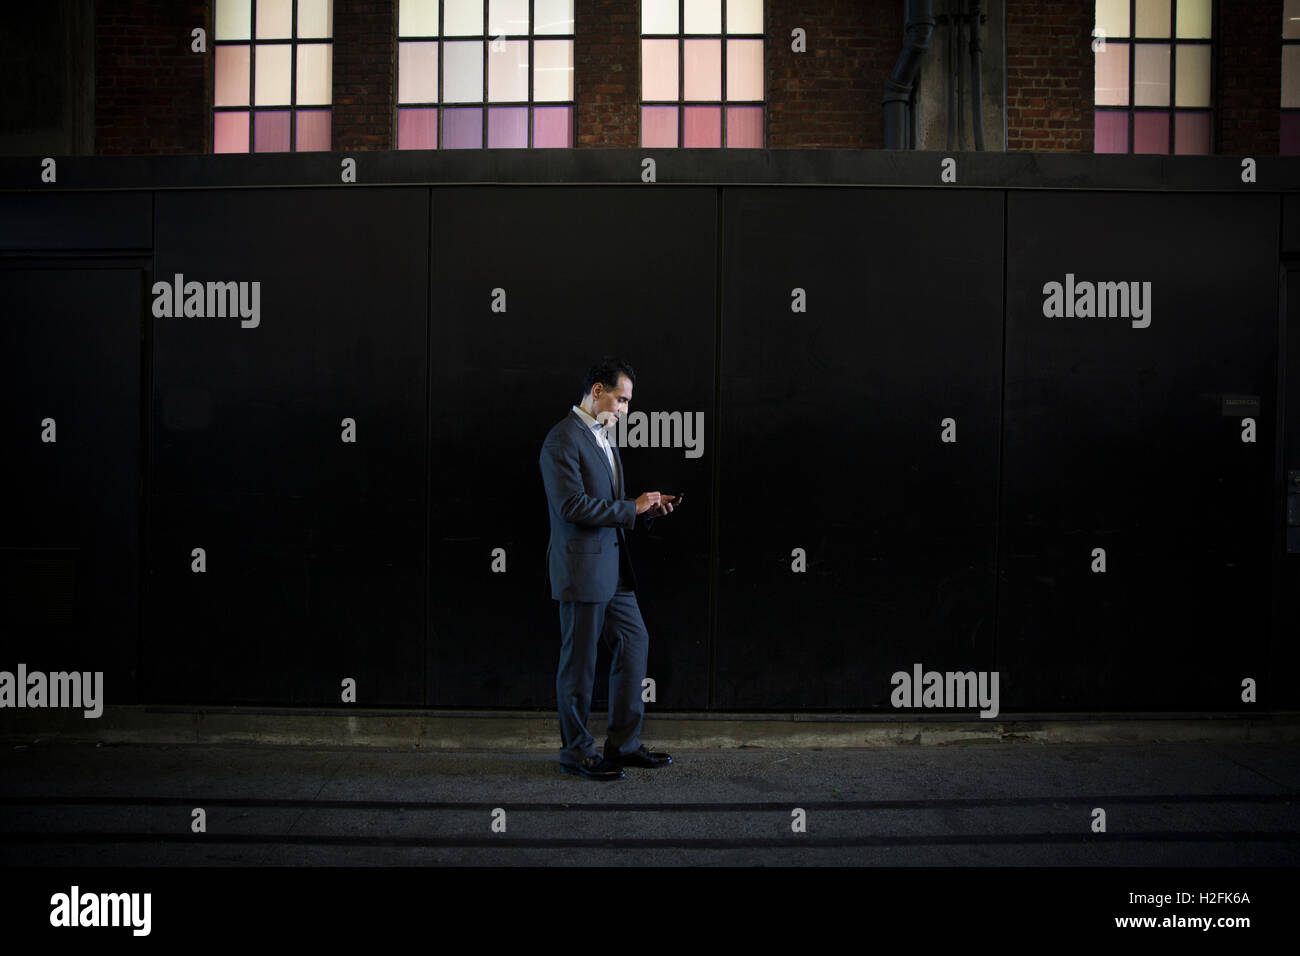 A man in a suit standing in shadow on  a city street under a lit window, checking his phone. - Stock Image